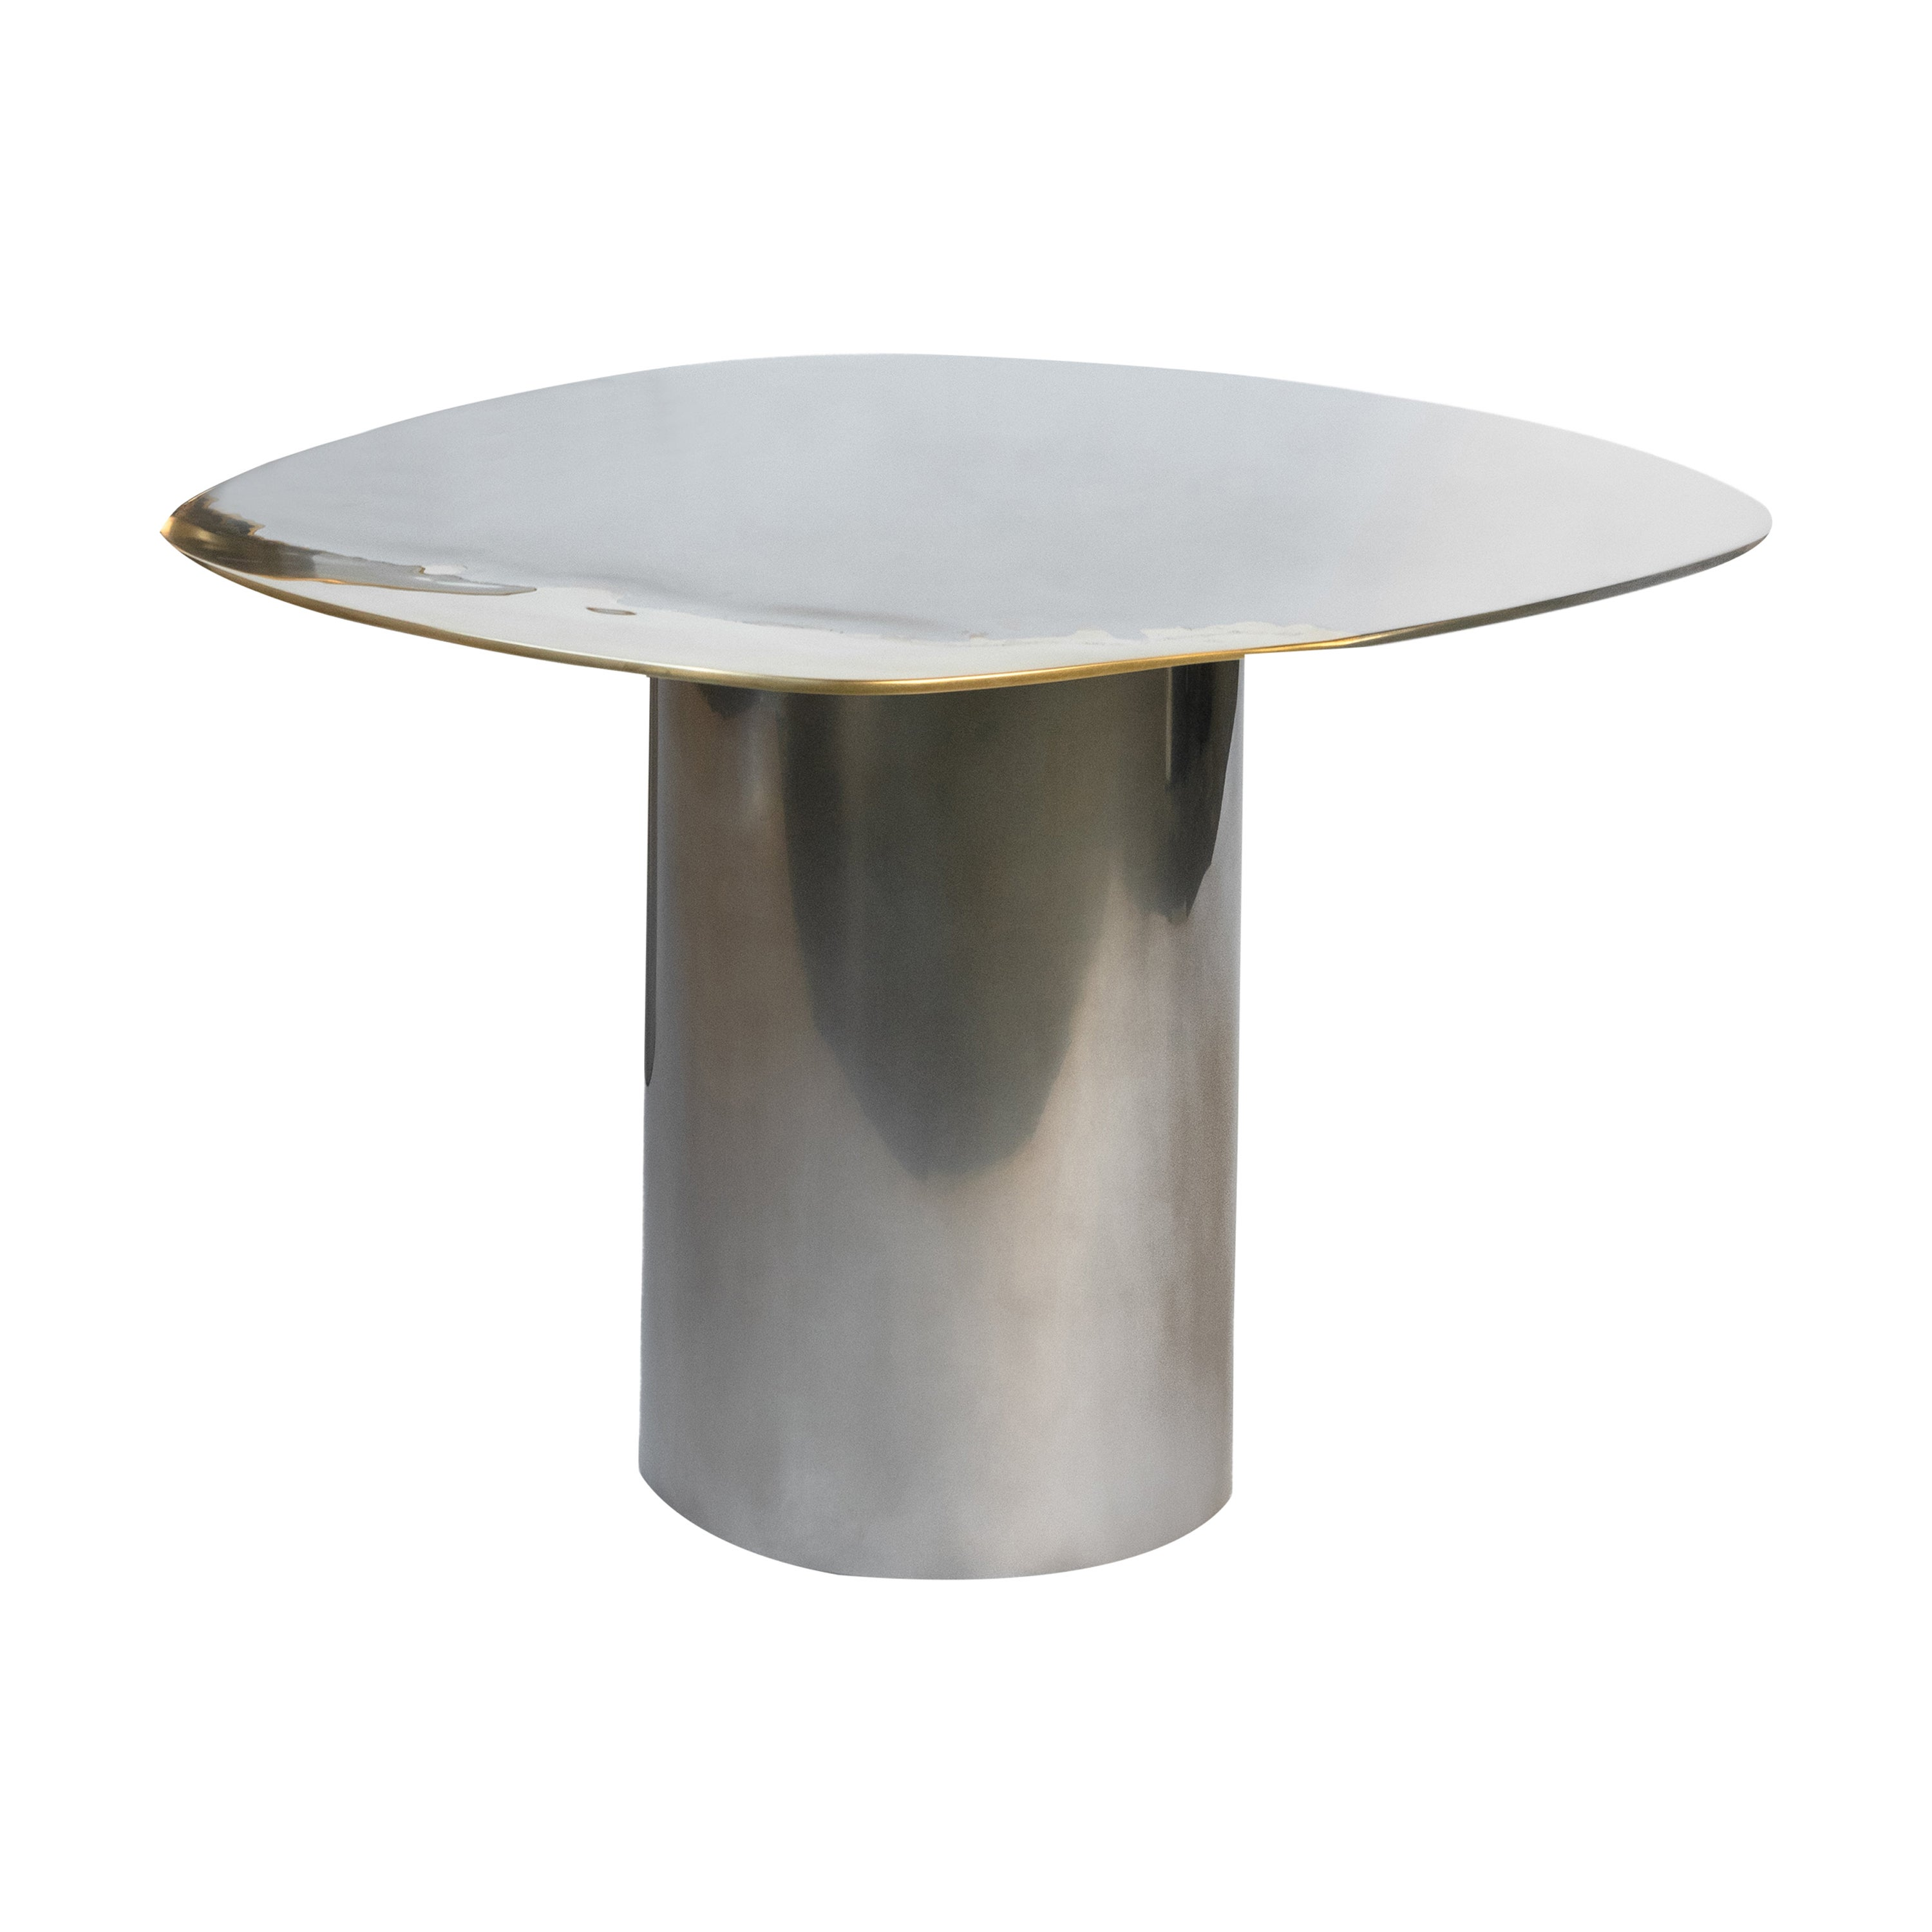 Polished Bimetal Two-Tone Brass Stainless Steel Side Table